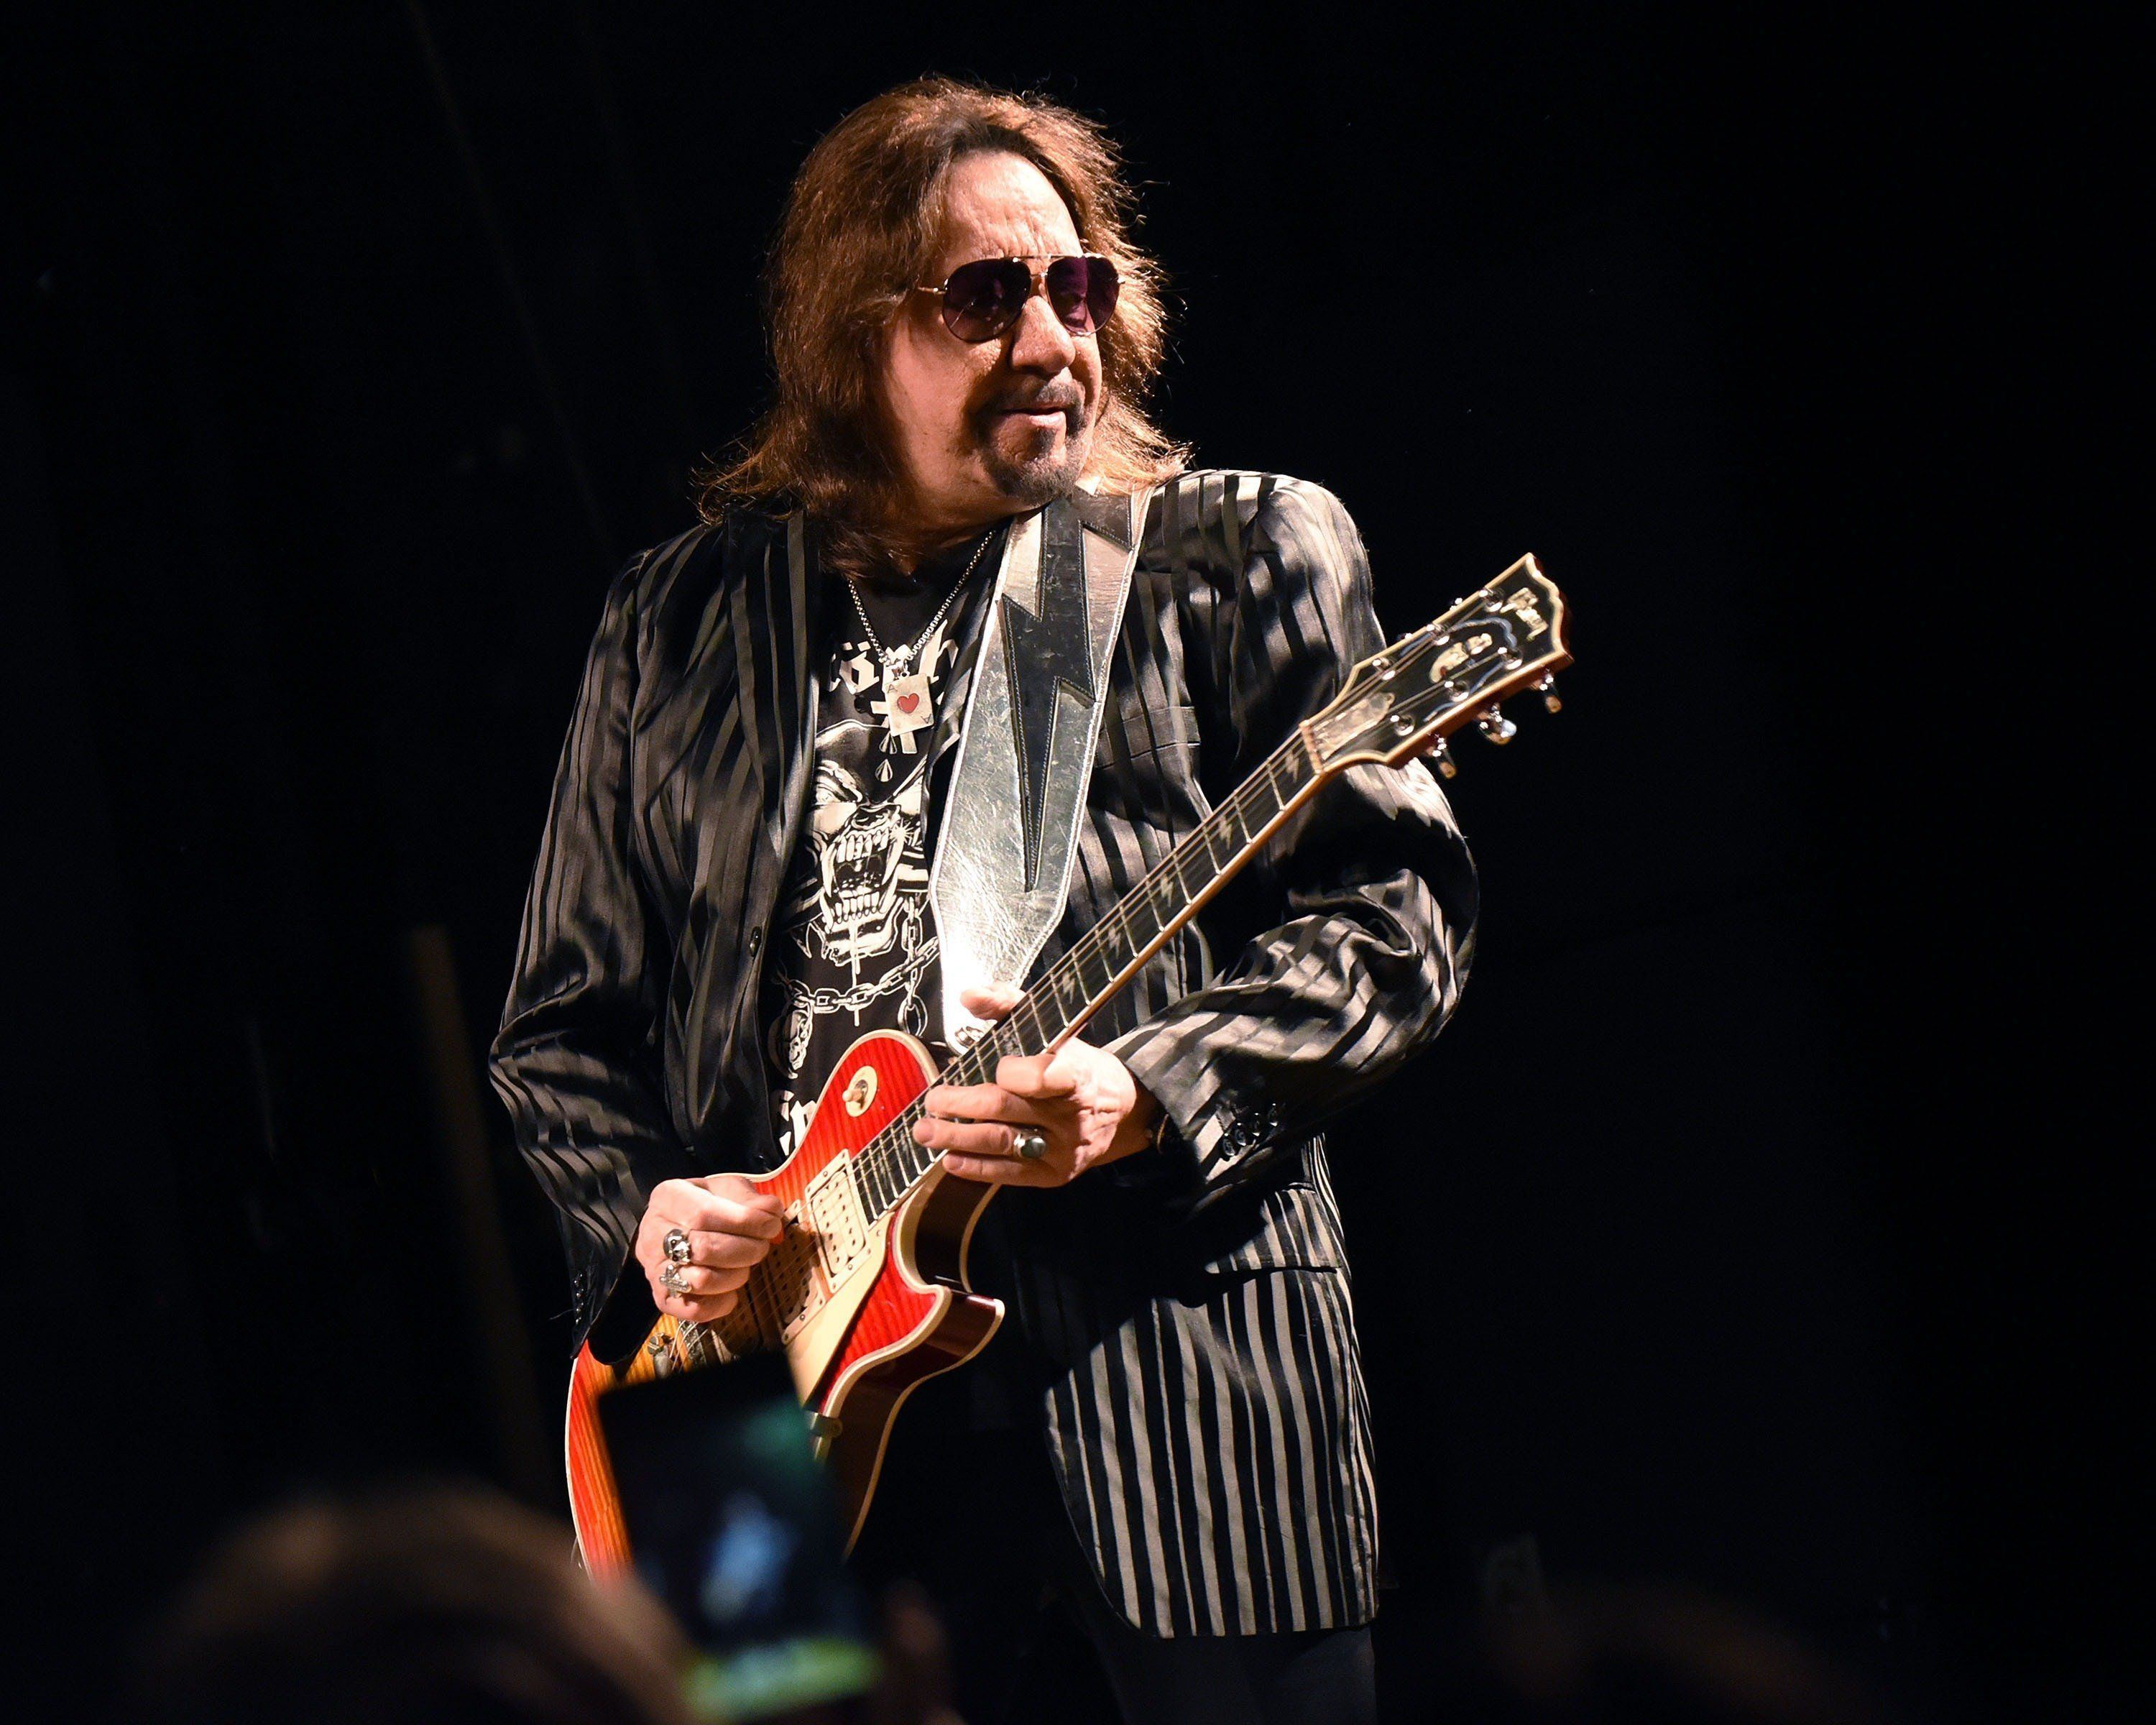 ATLANTA, GEORGIA - APRIL 05:  Ace Frehley performs at Variety Playhouse on April 5, 2016 in Atlanta, Georgia.  (Photo by Chris McKay/Getty Images)